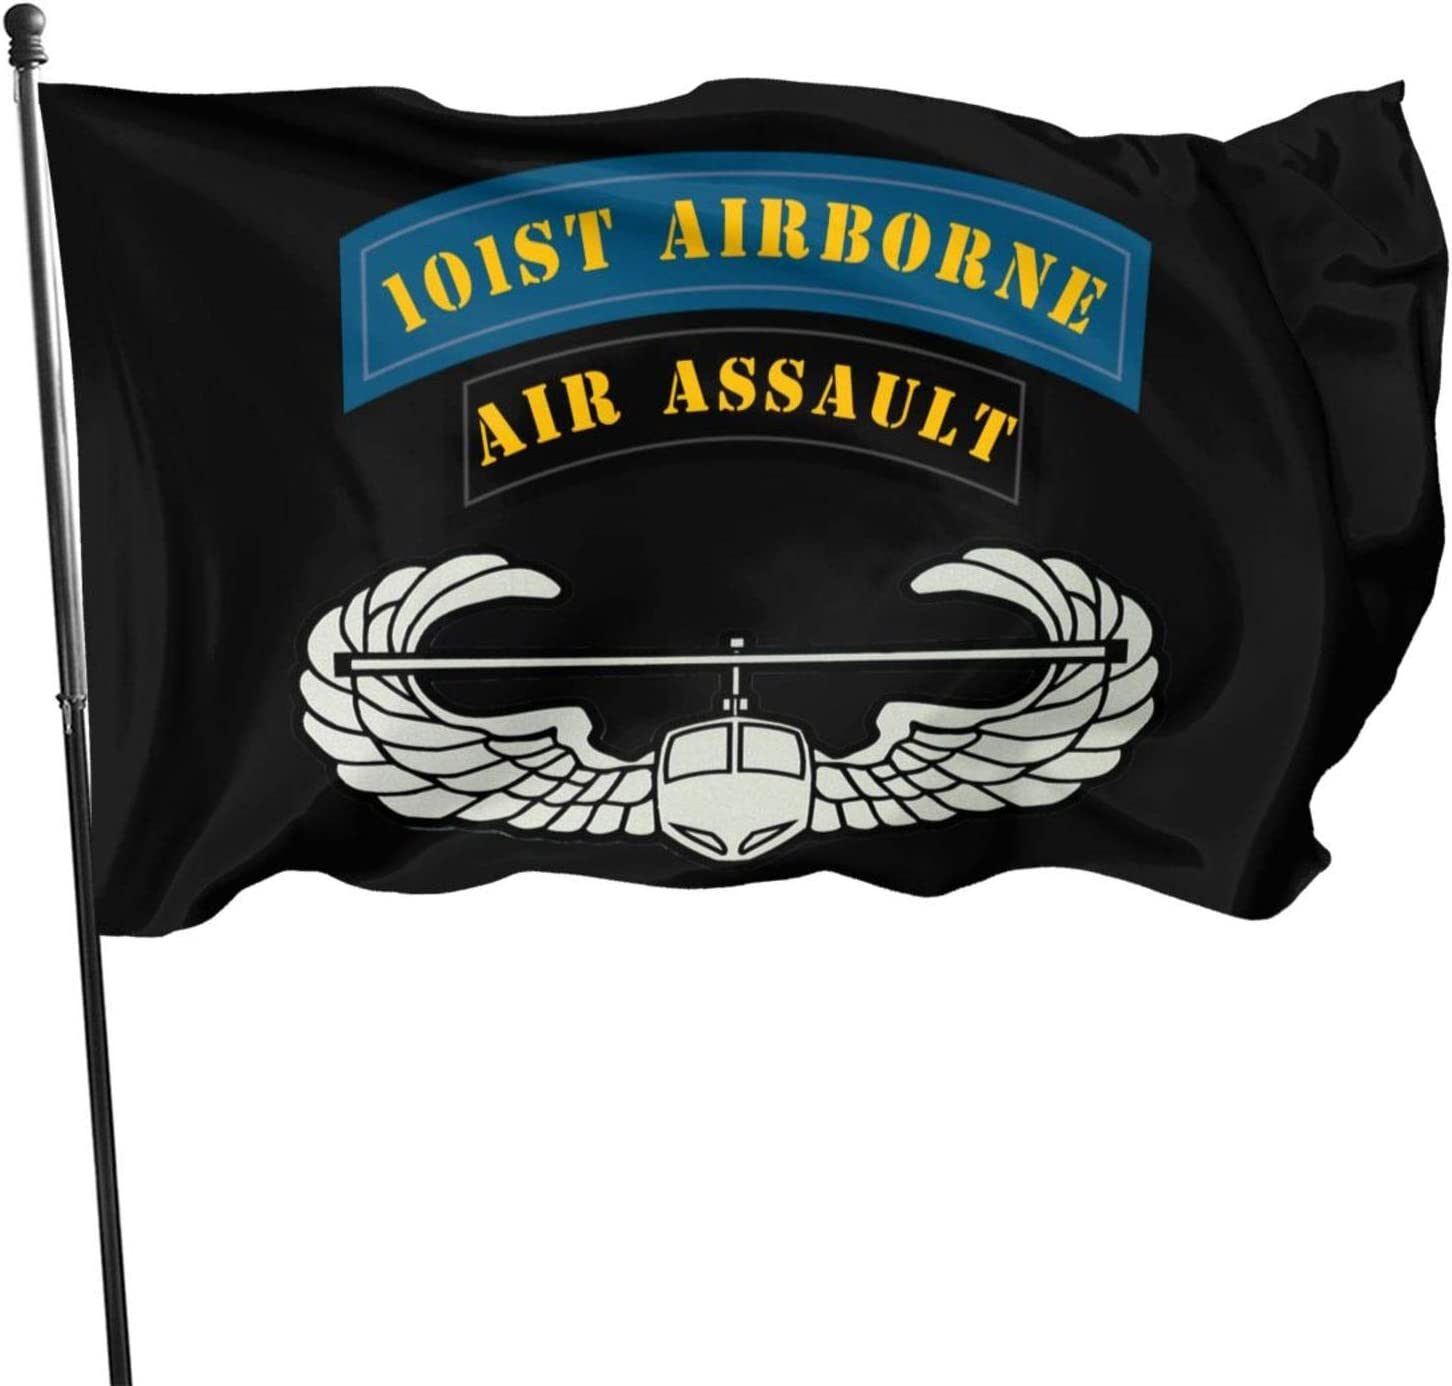 WUWEJHYQSE Us Army 101st Airborne Air Assault Flag 3x5 Ft,Home Garden Flag, Suitable for Indoor Or Outdoor